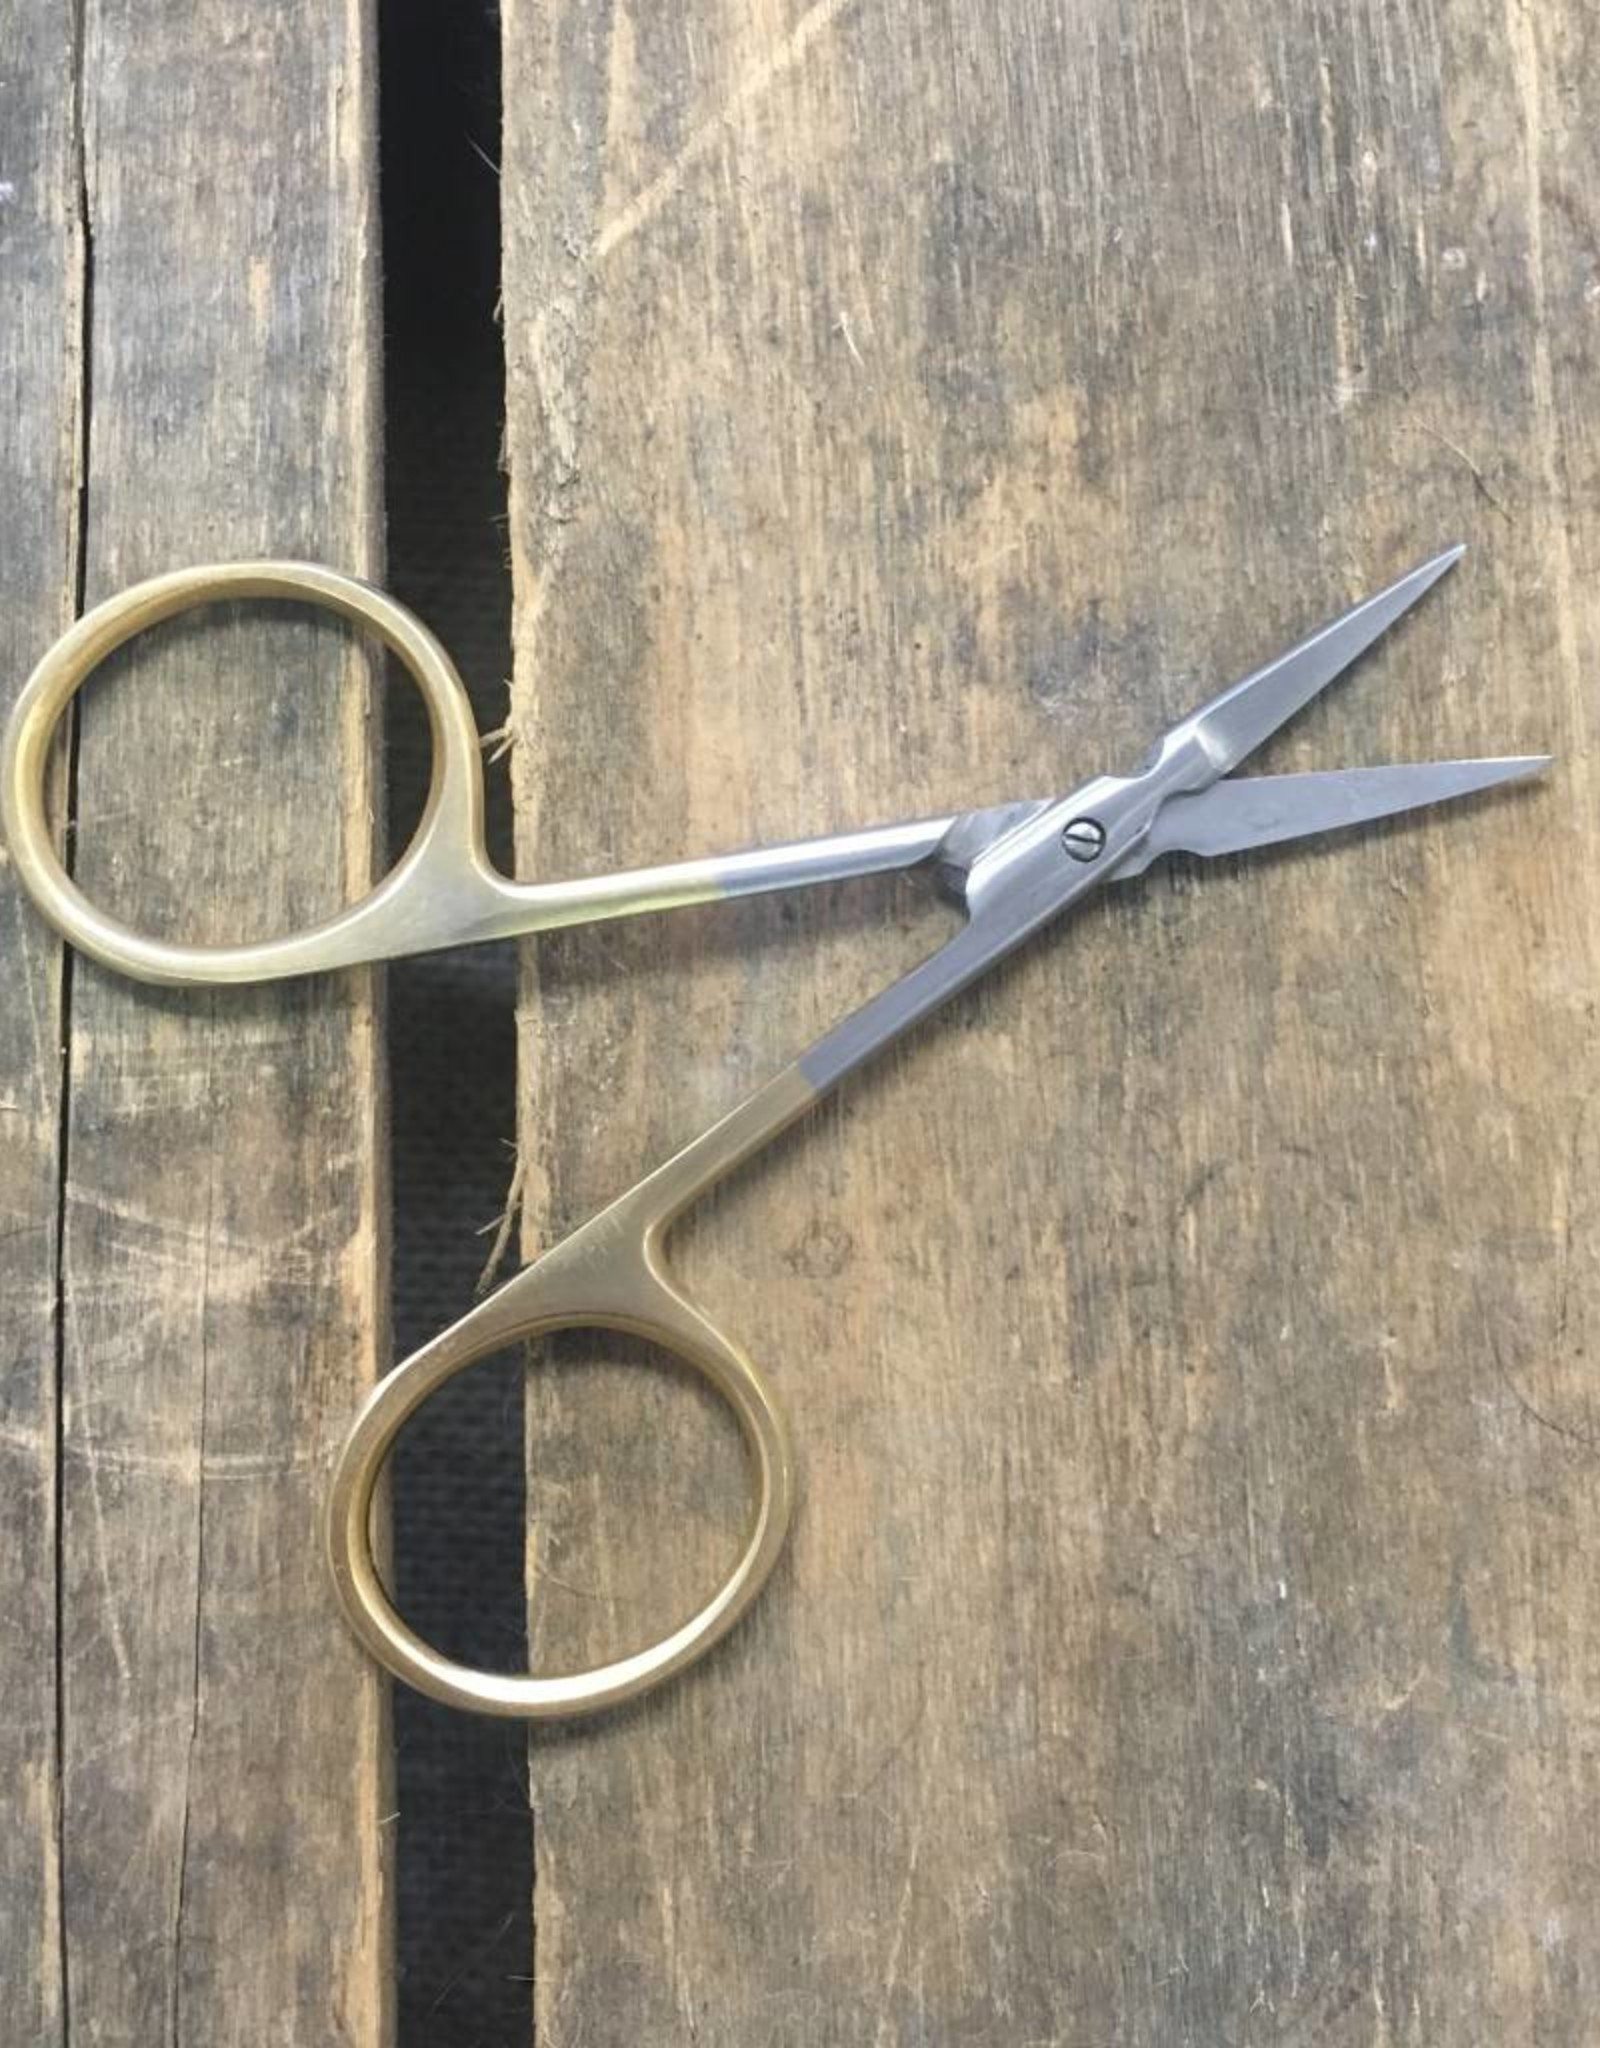 Minimalist Gold Handled Embroidery Scissors